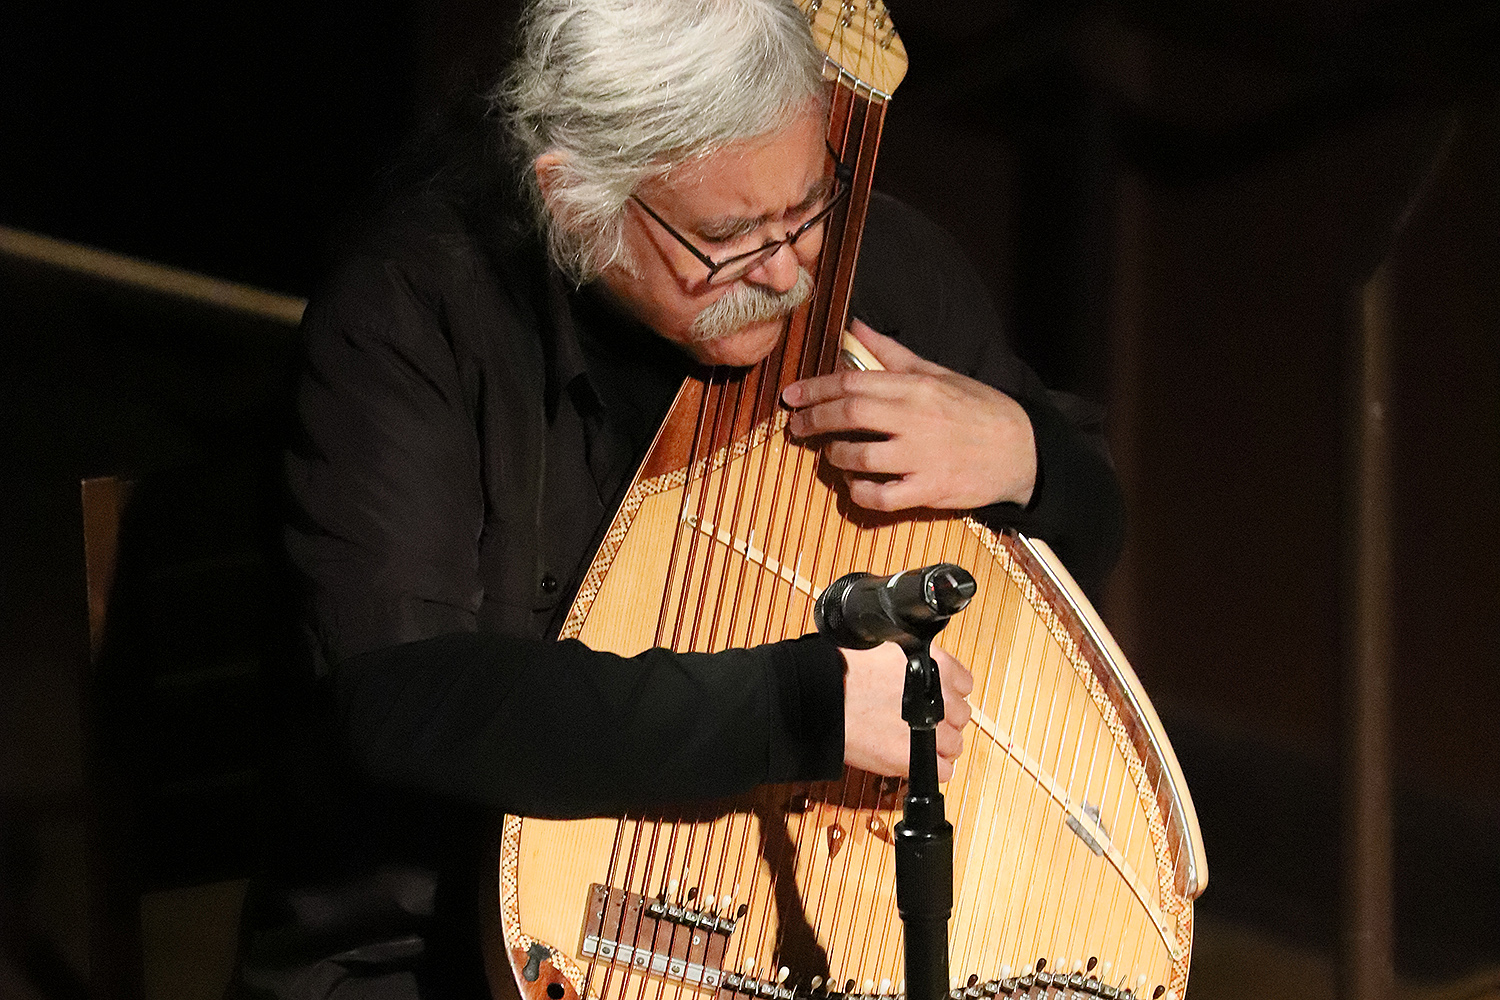 Composer Julian Kytasty, a Ukrainian descendant, performed on a Ukranian, string instrument known as a bandura.